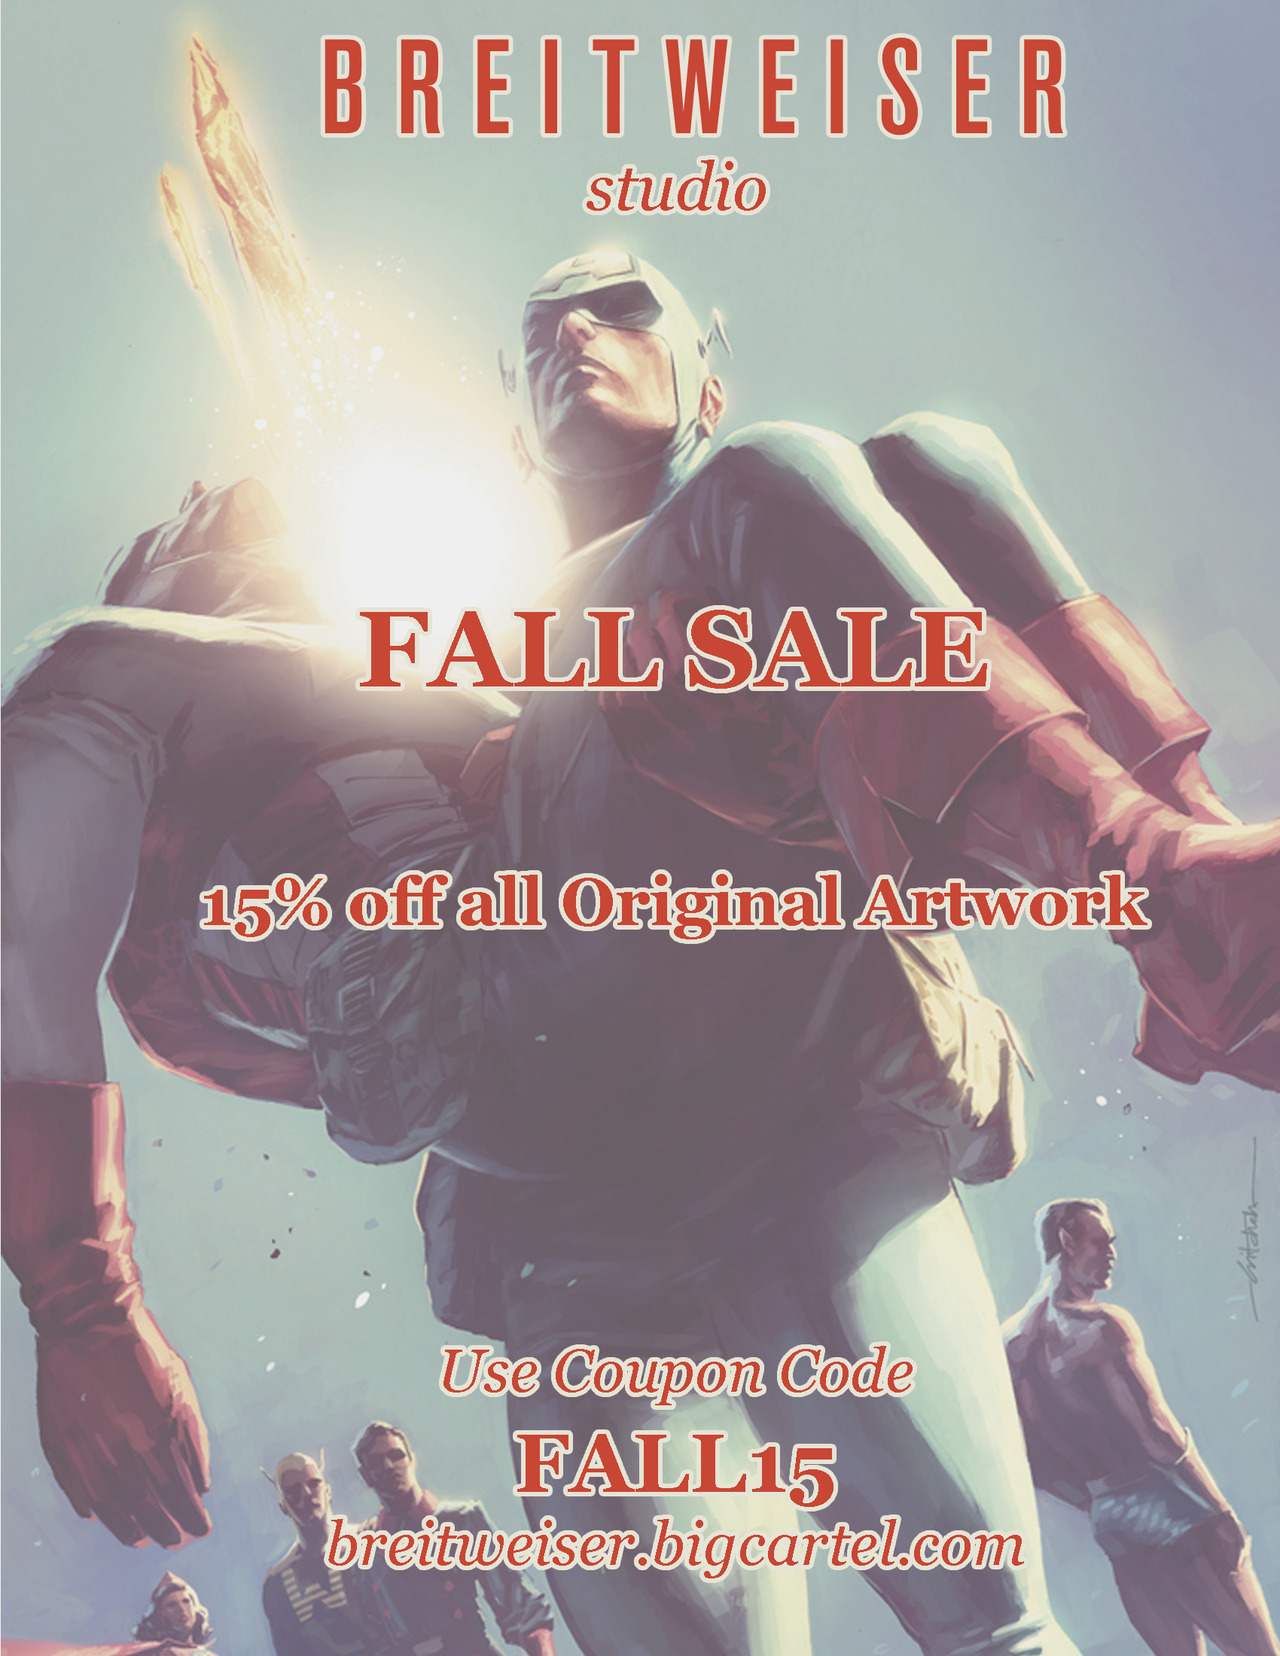 We're running our big fall sale! 15% off all the original art in the shop. There are some great buys and brand new artwork has been posted. Use coupon code FALL15 at breitweiser.bigcartel.com. Thanks!